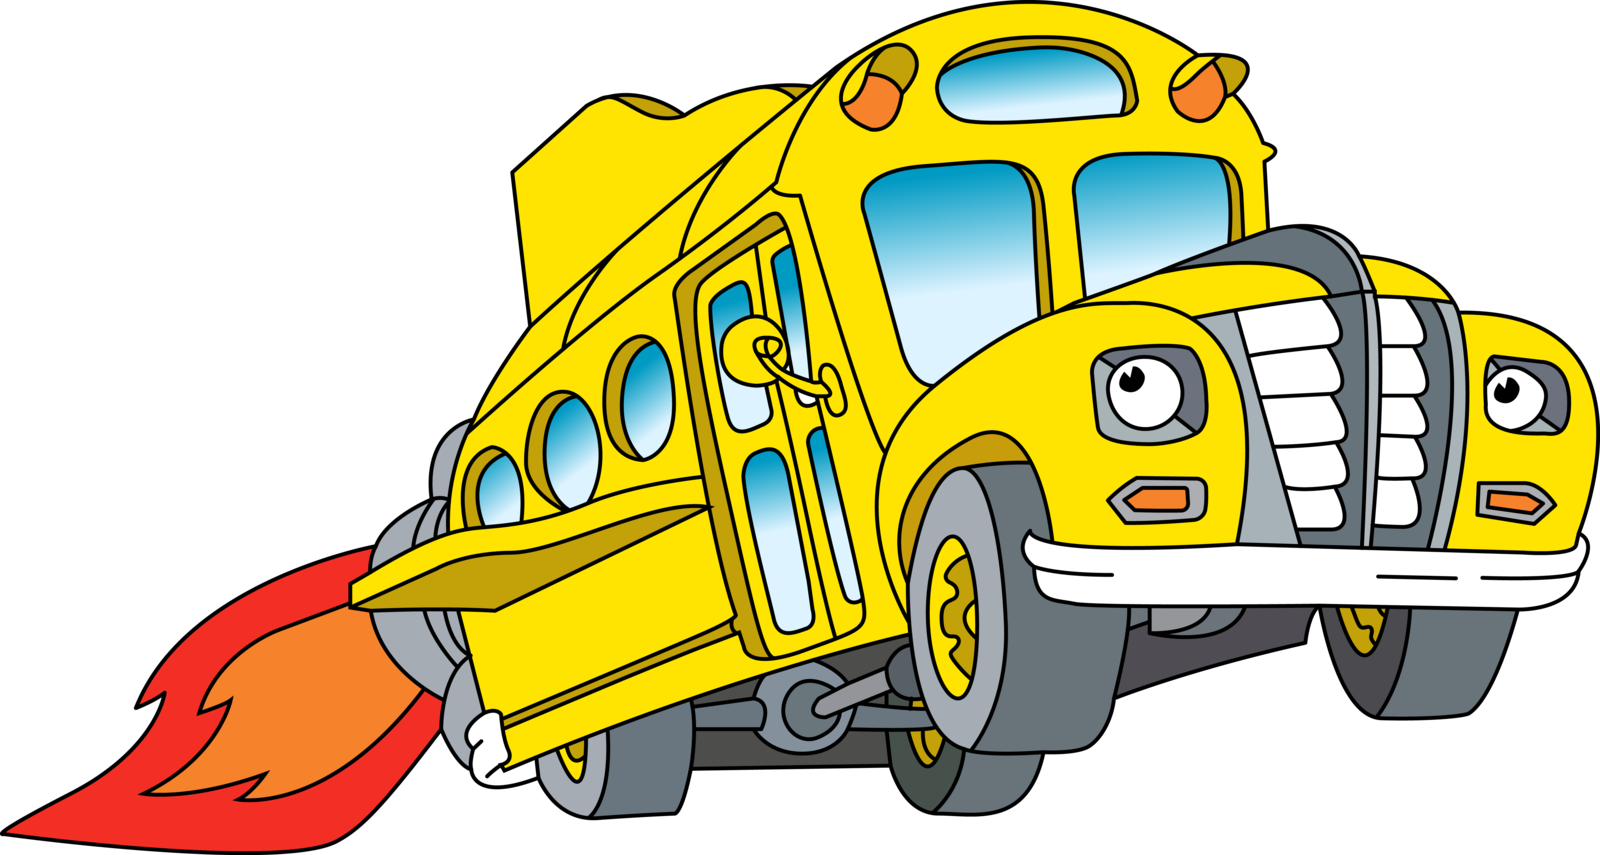 Free clipart of school bus image stock Magic School Bus Clipart at GetDrawings.com | Free for personal use ... image stock